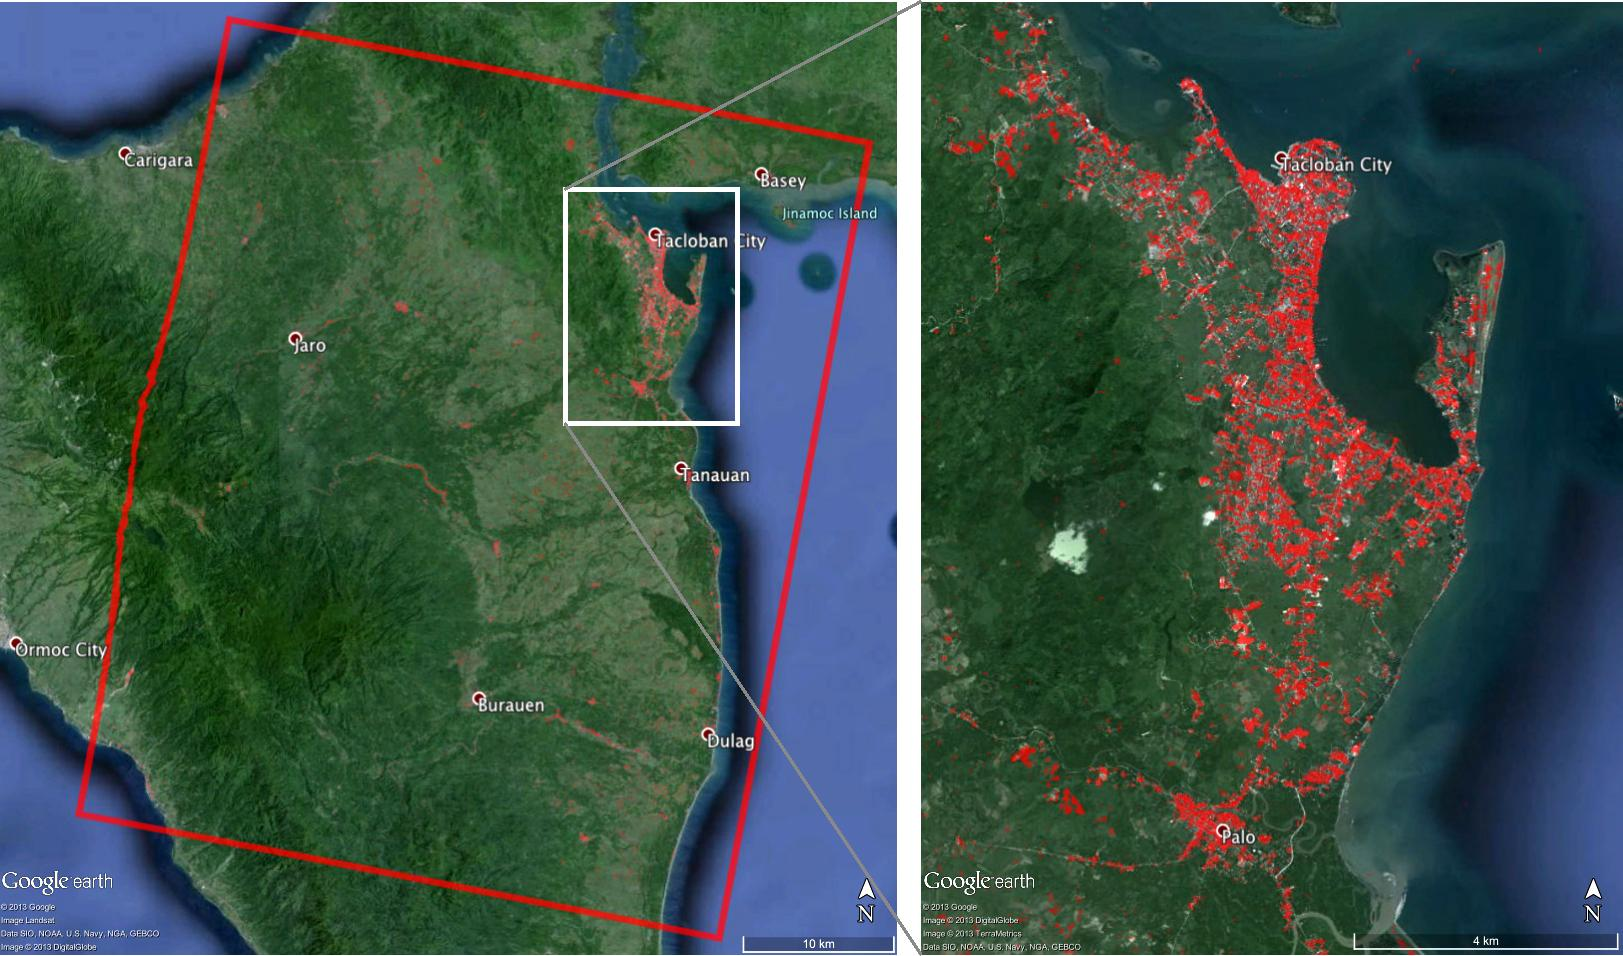 NASA Maps to Aid Super Typhoon Haiyan Disaster Relief